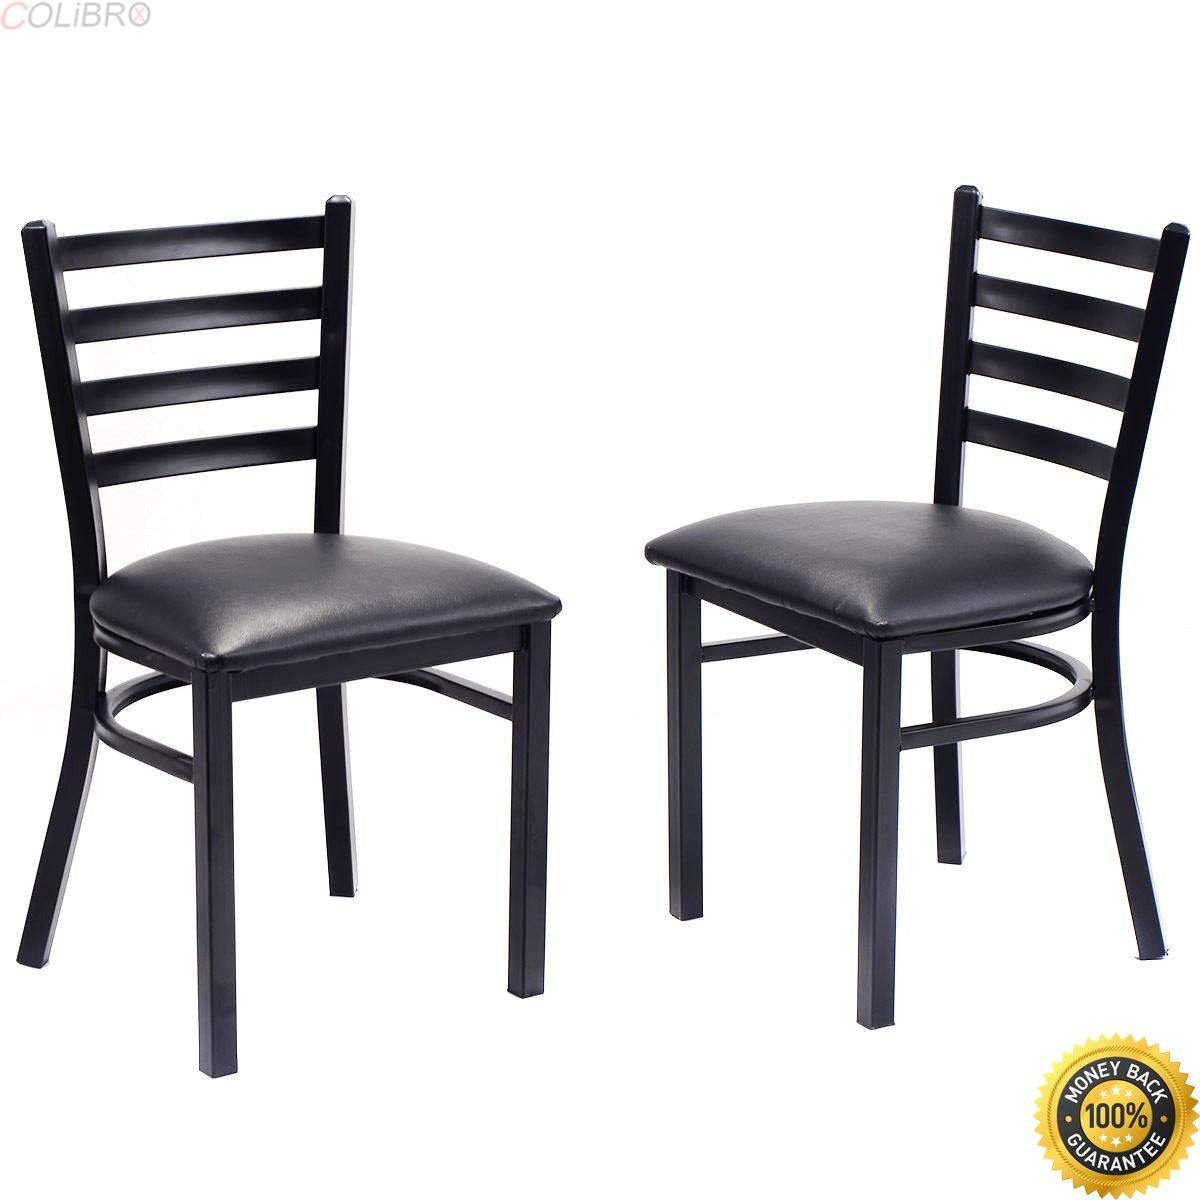 At Home Kitchen Chairs.Buy Colibrox Set Of 2 Metal Dining Chairs Upholstered Home Kitchen